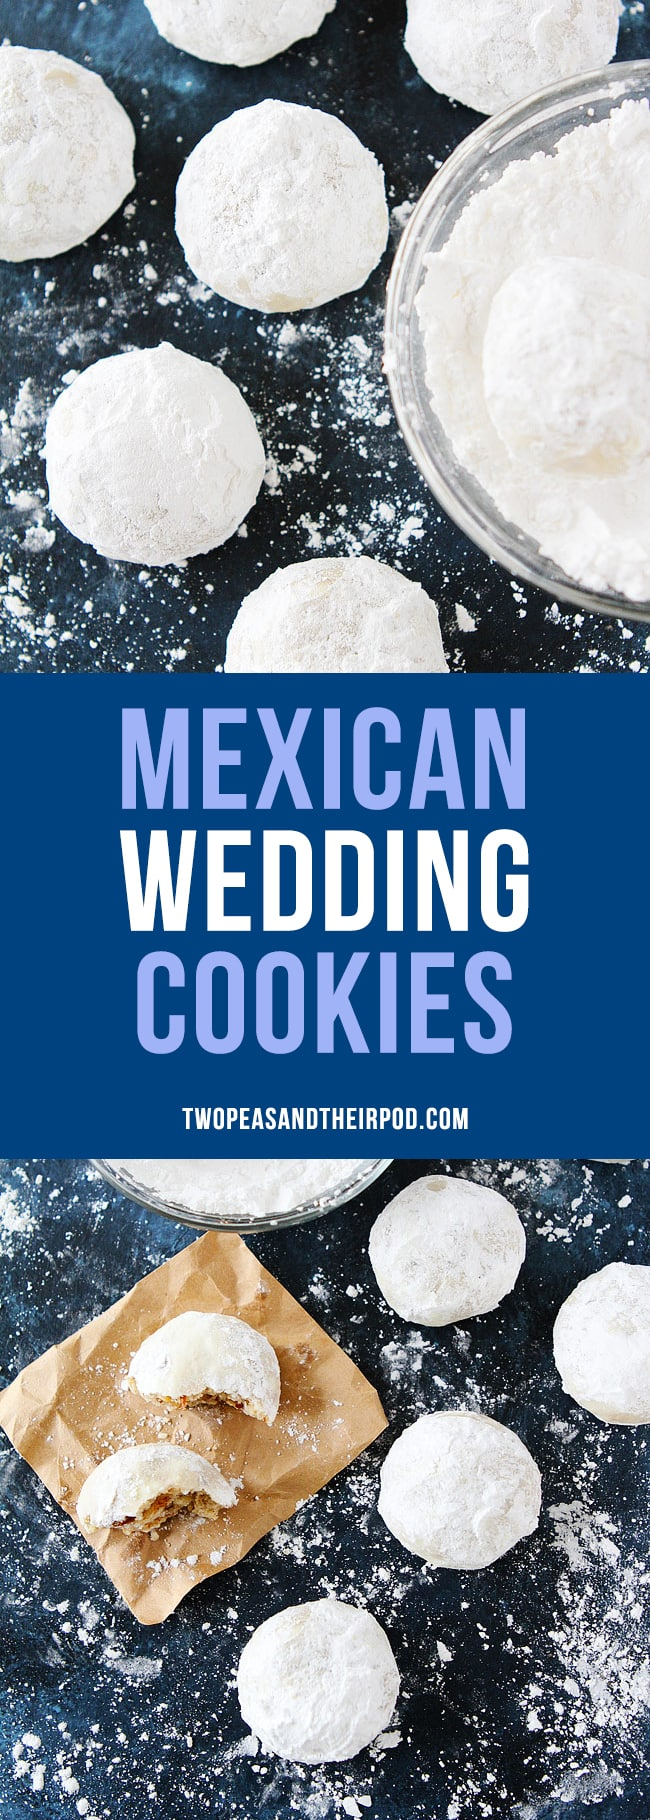 Mexican Wedding Cookies are buttery pecan cookies rolled in confectioners sugar, making them look just like snowballs. They are the perfect Christmas cookie, add them to your holiday baking list this year. #cookies #Christmas #Christmascookies #holidays #baking #MexicanWeddingCookies